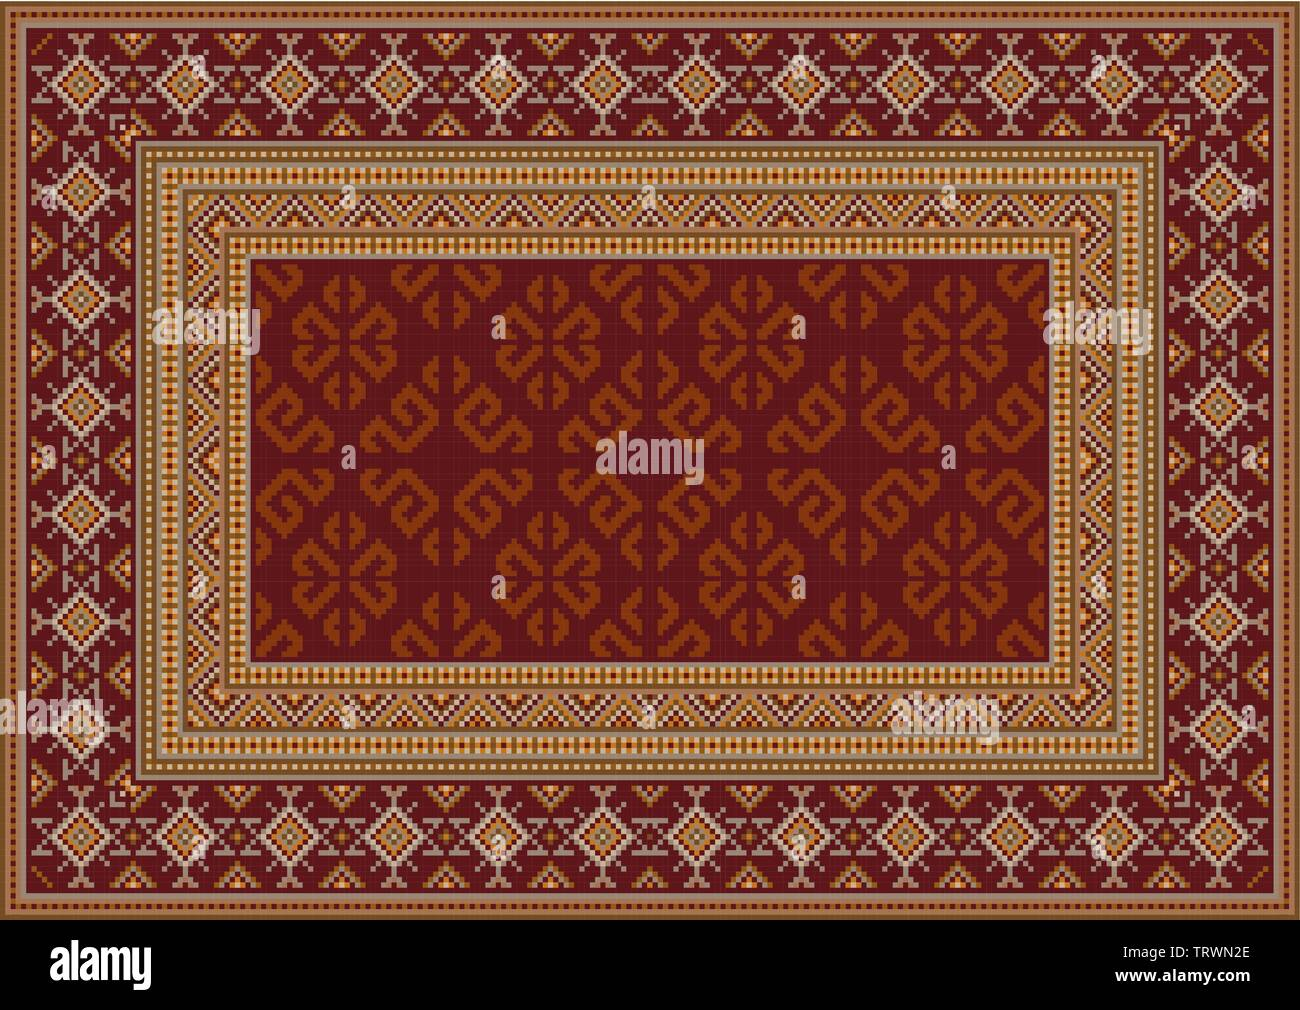 Luxury vintage oriental carpet in maroon shades with patterns of yellow, beige and grey colors - Stock Image